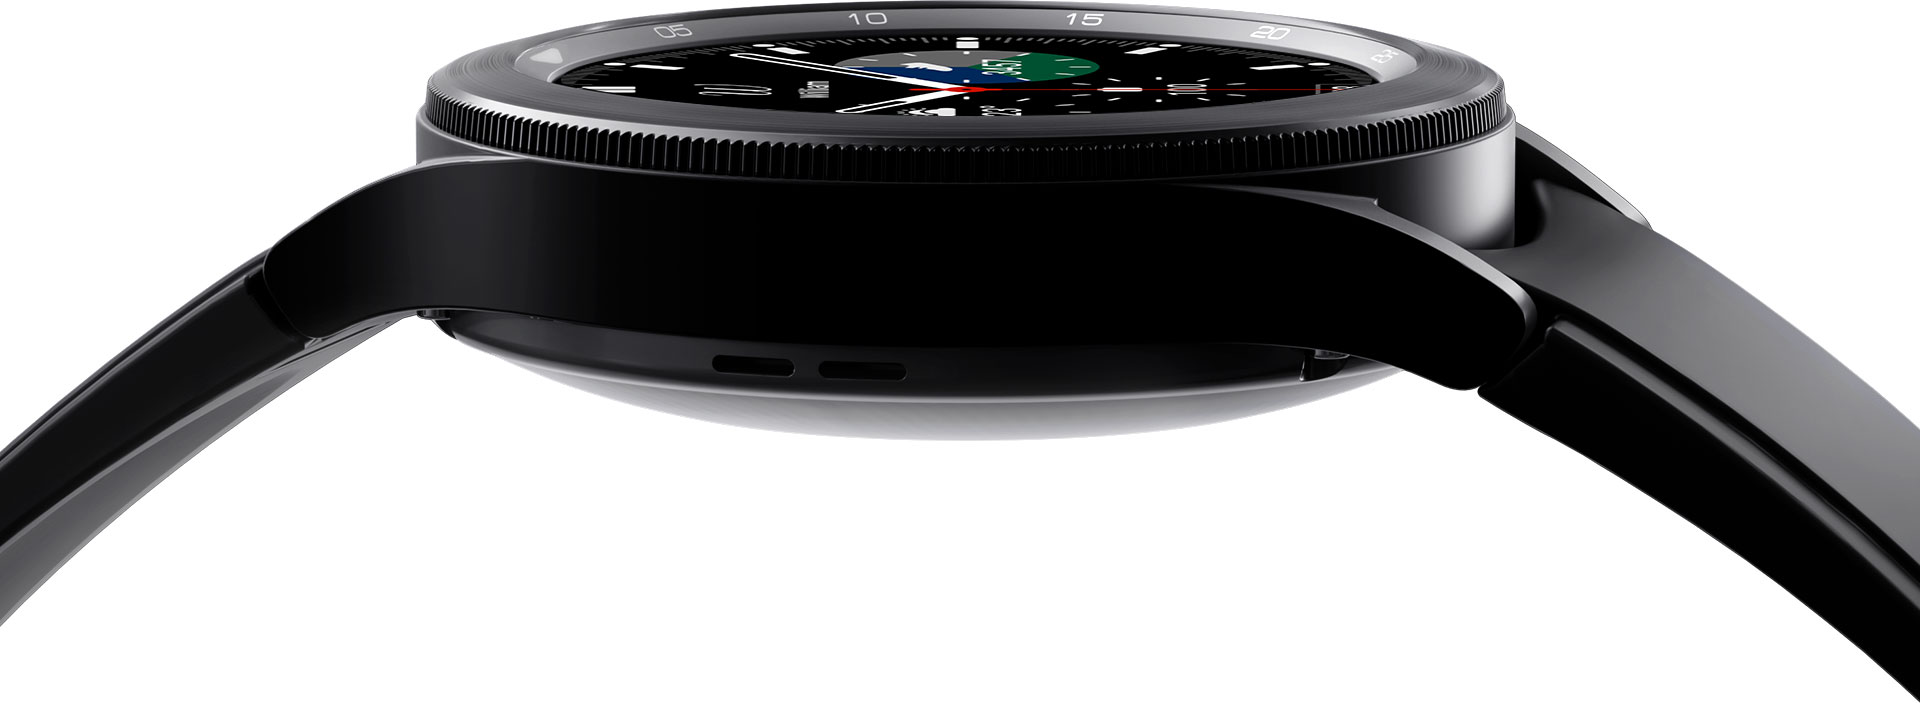 The Galaxy Watch4 Classic device's body is shown in a close-up, with focus on the details of its bezel.